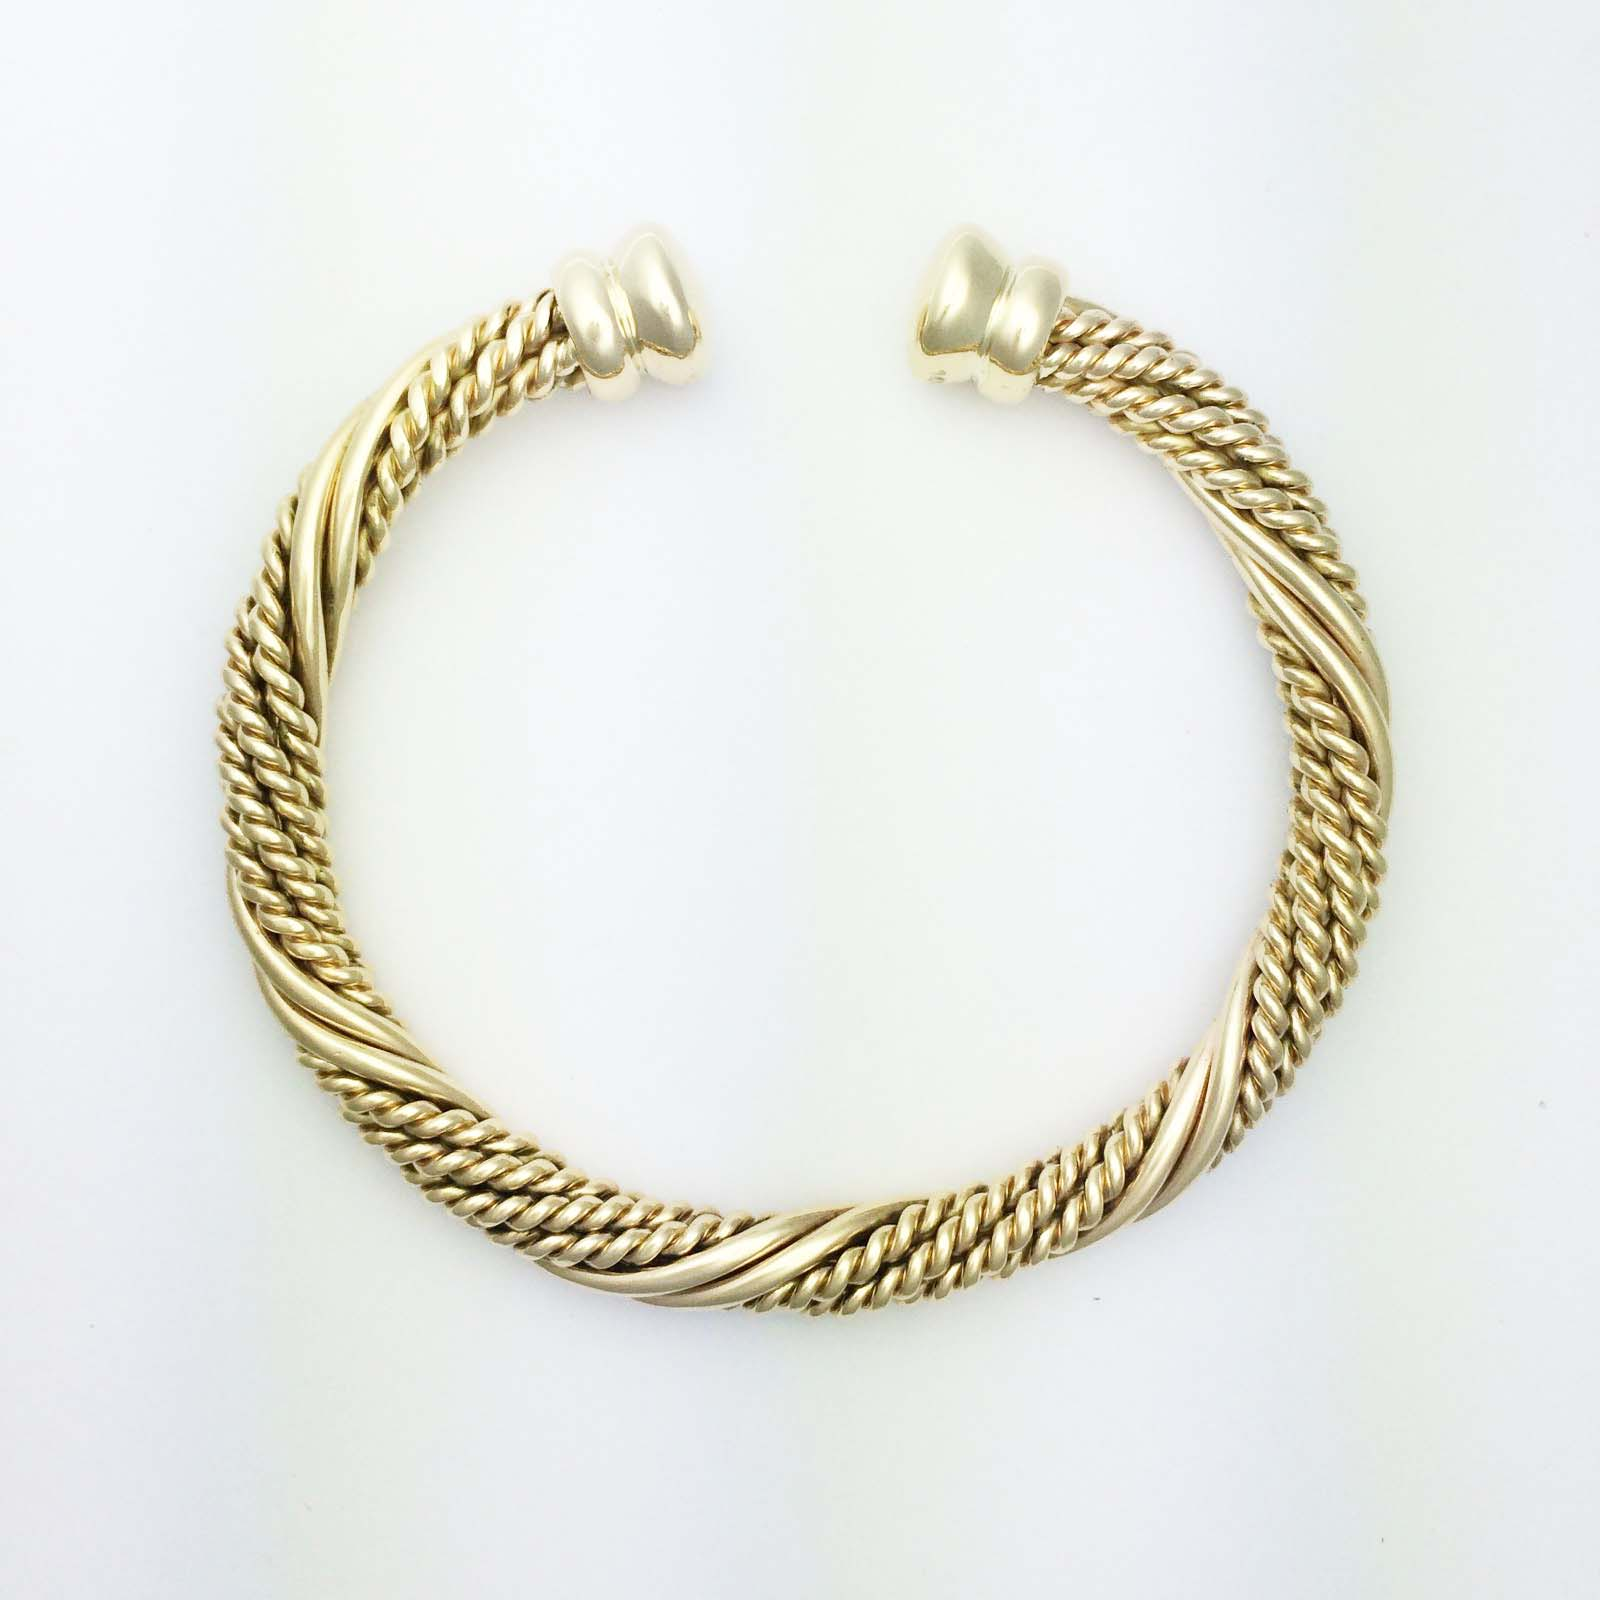 18k handmade Barbados cuff bangle